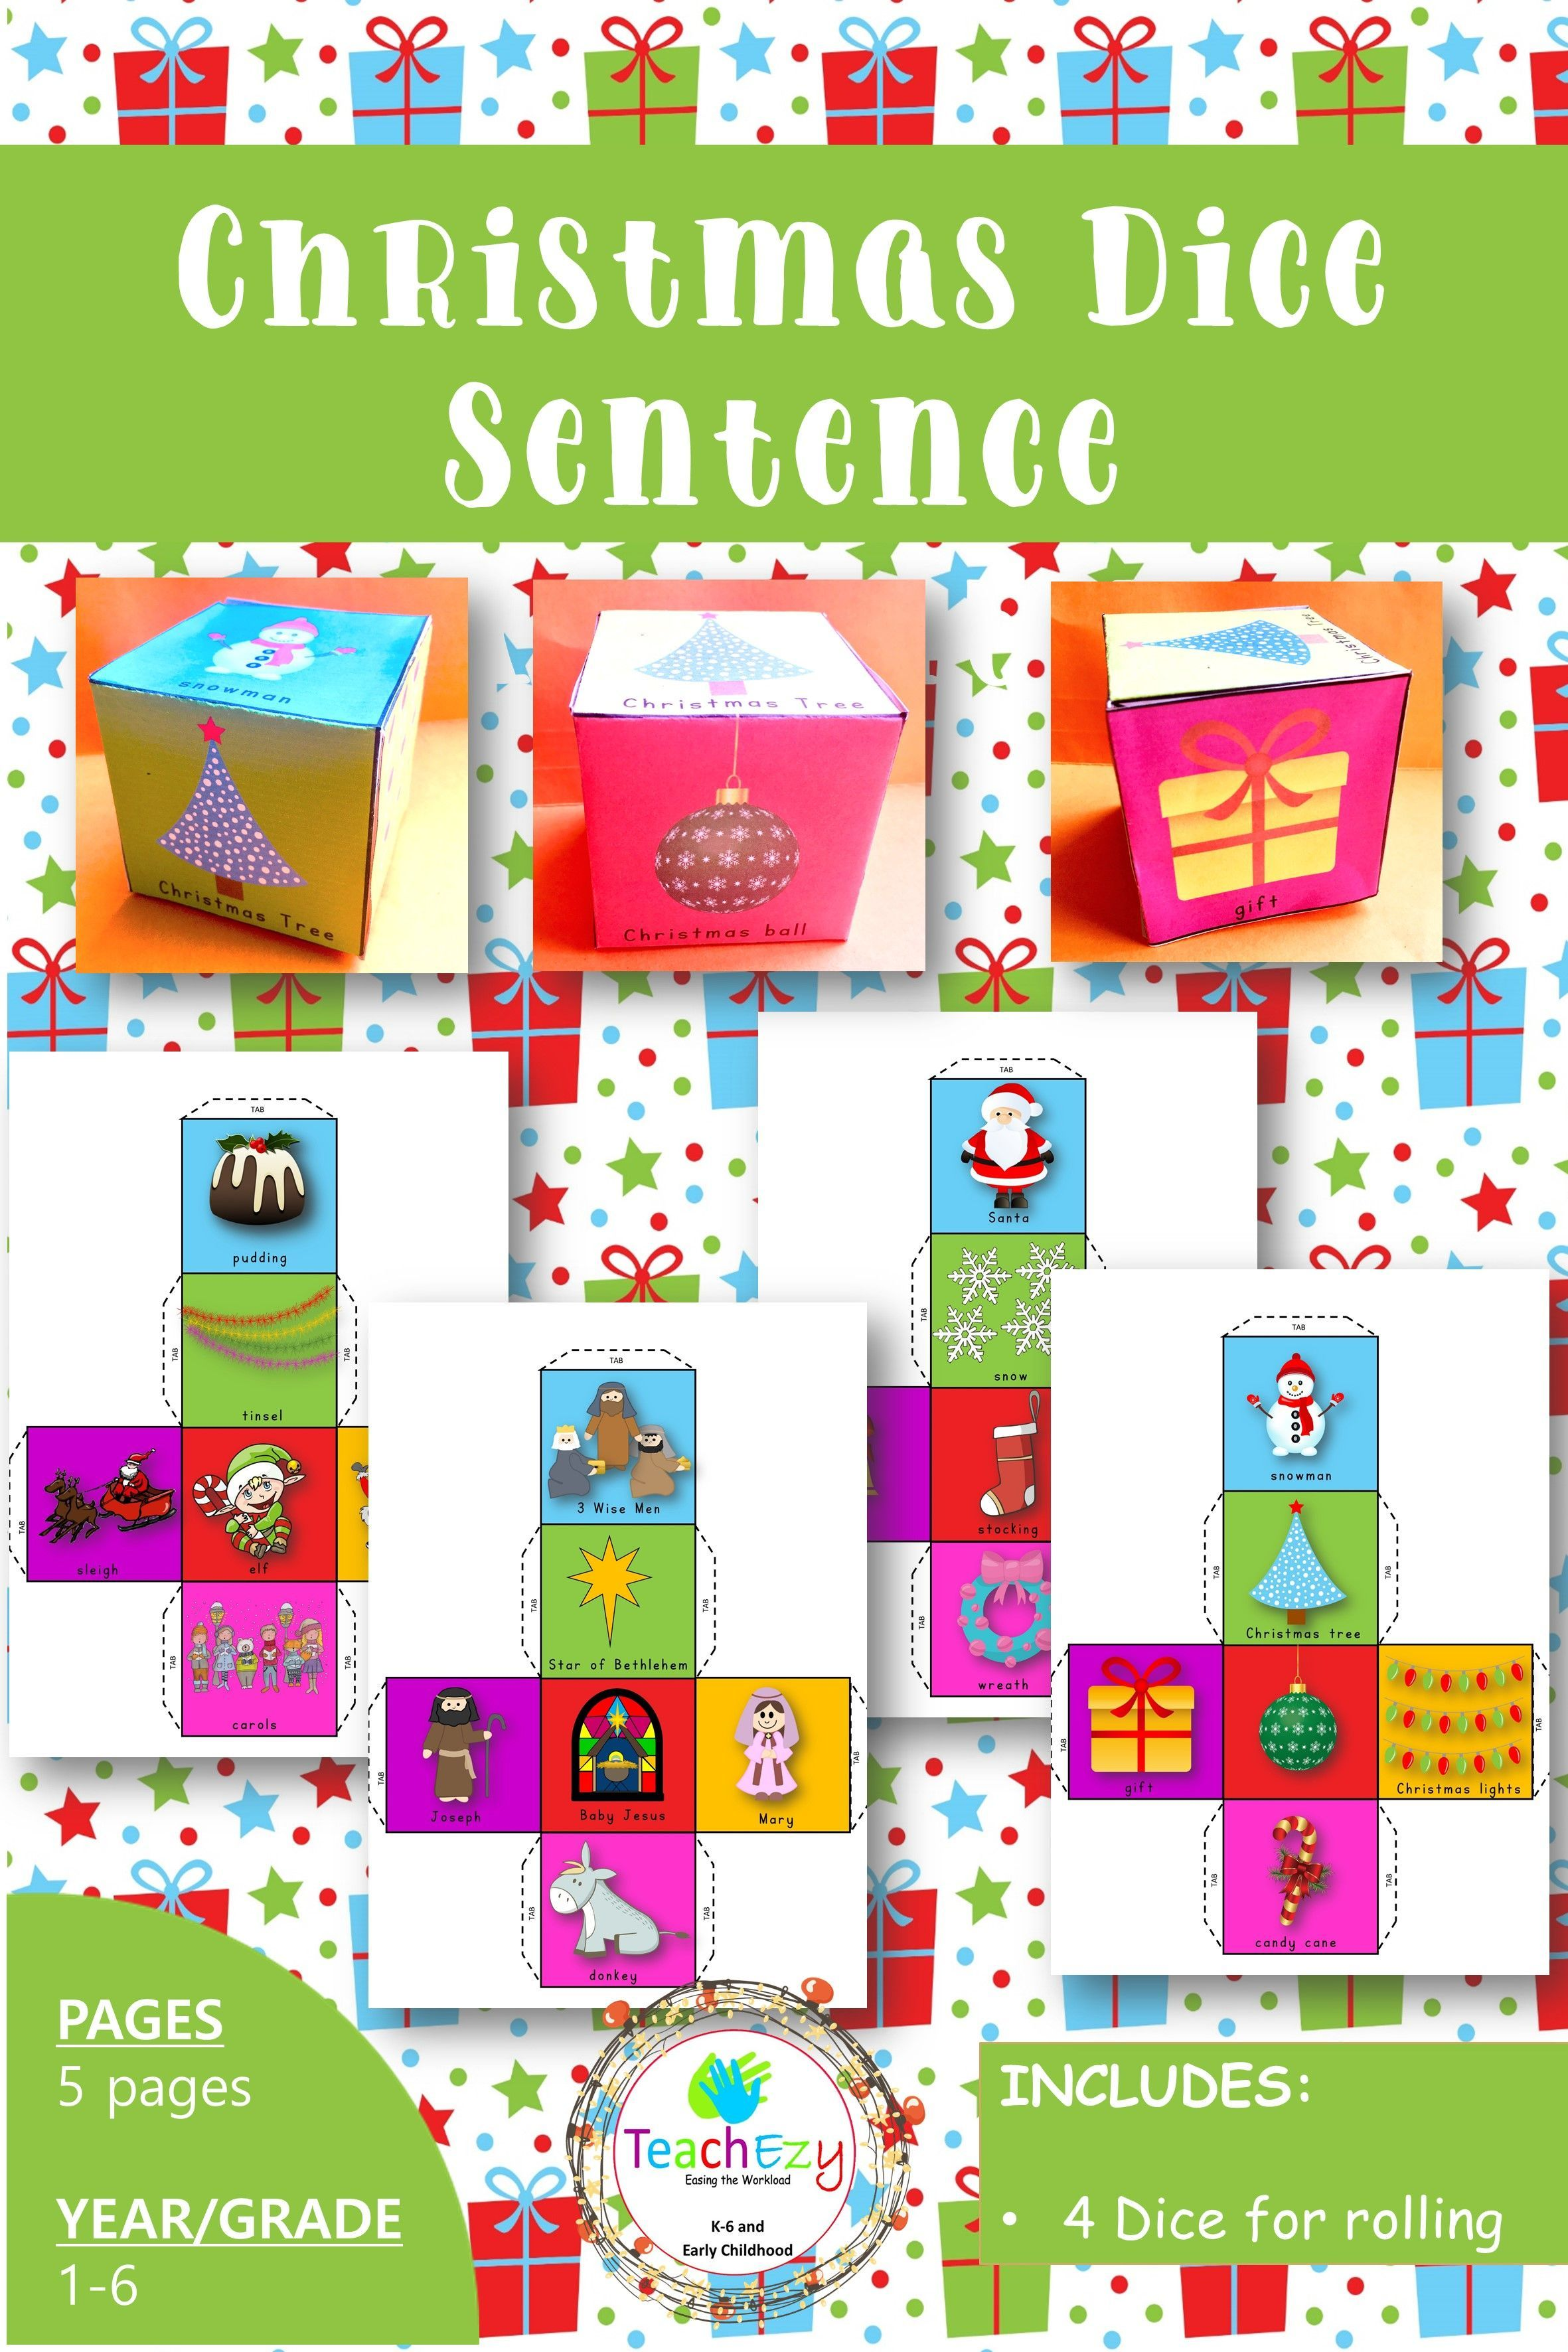 Four Christmas Dice Sentence Activities Suitable For Any